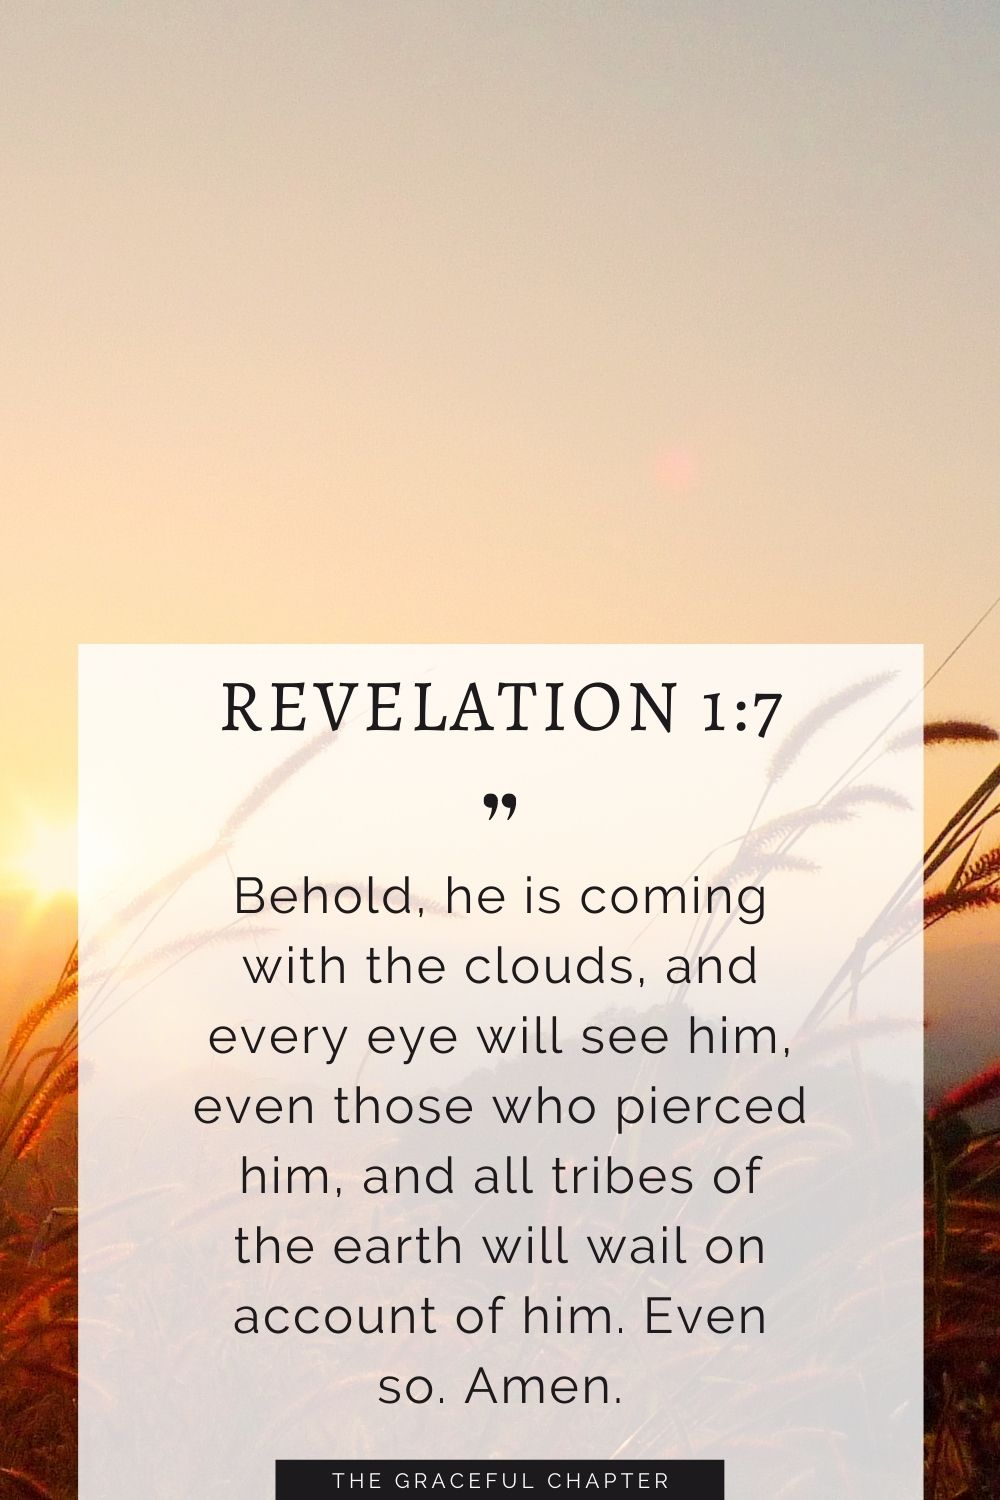 Behold, he is coming with the clouds, and every eye will see him, even those who pierced him, and all tribes of the earth will wail on account of him. Even so. Amen. Revelation 1:7